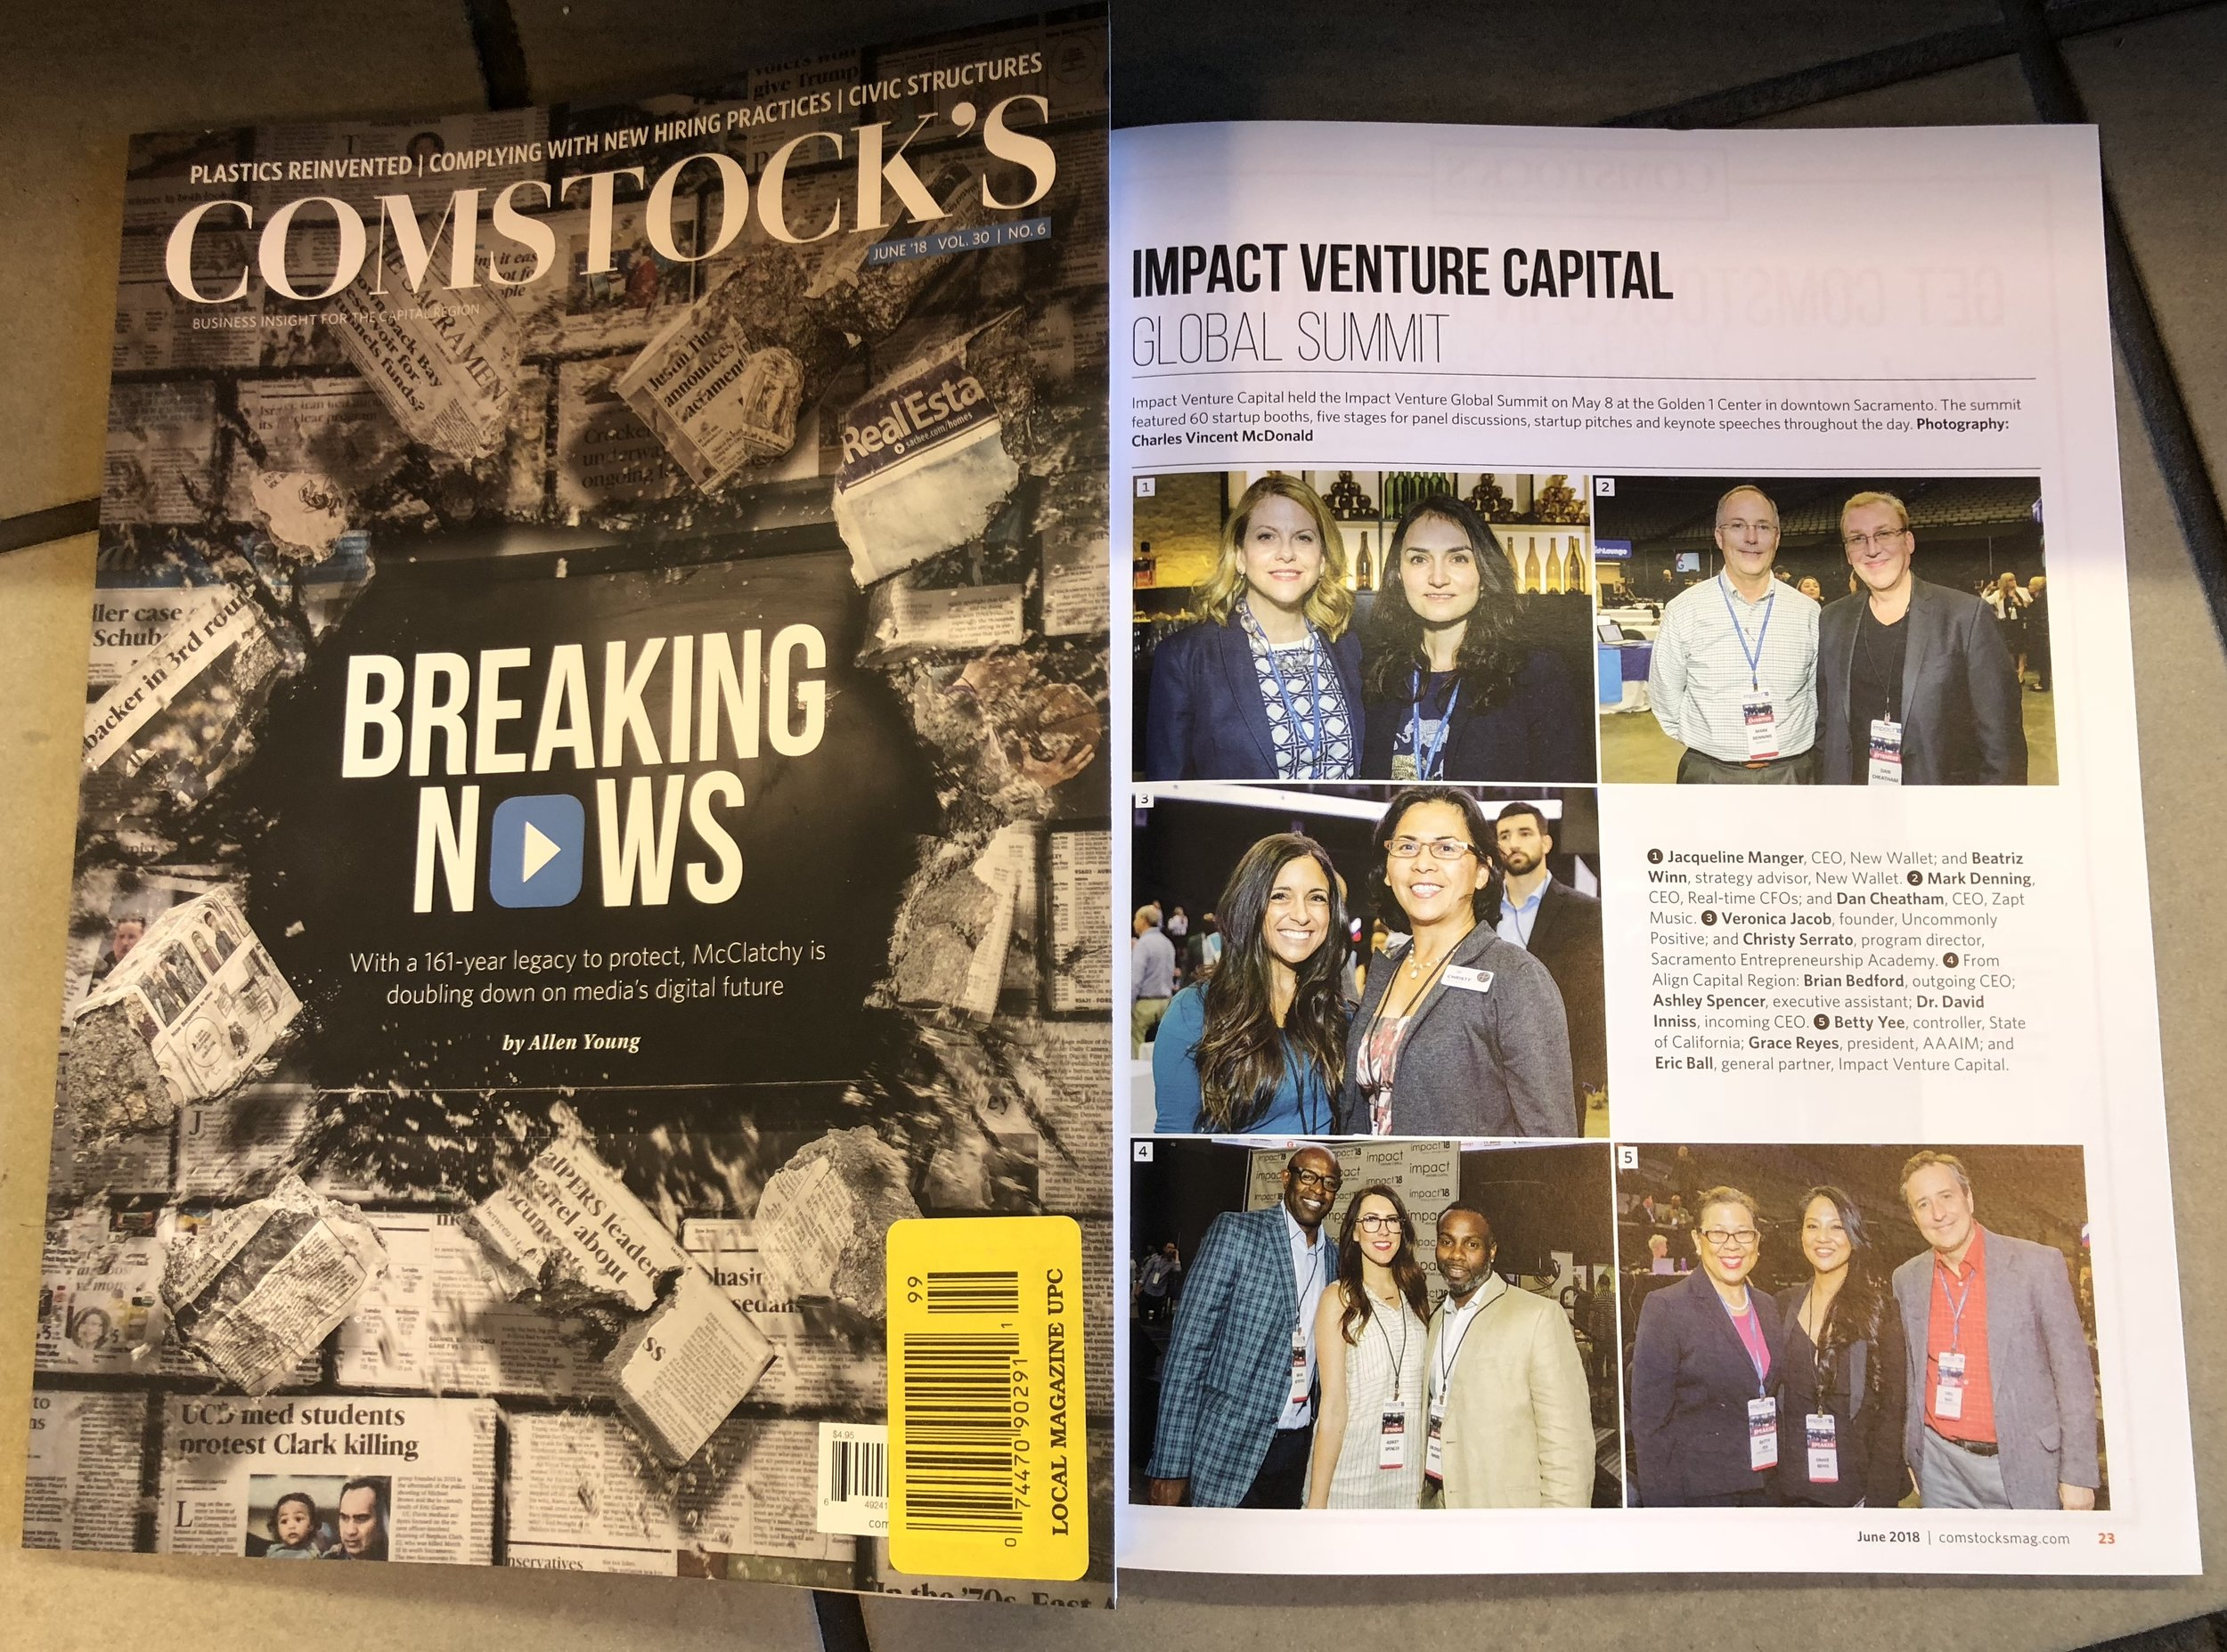 SEA Mentor Veronica Jacob and SEA Program Director Christy Serrato in the spotlight at the Impact Venture Capital Summit covered by Comstock